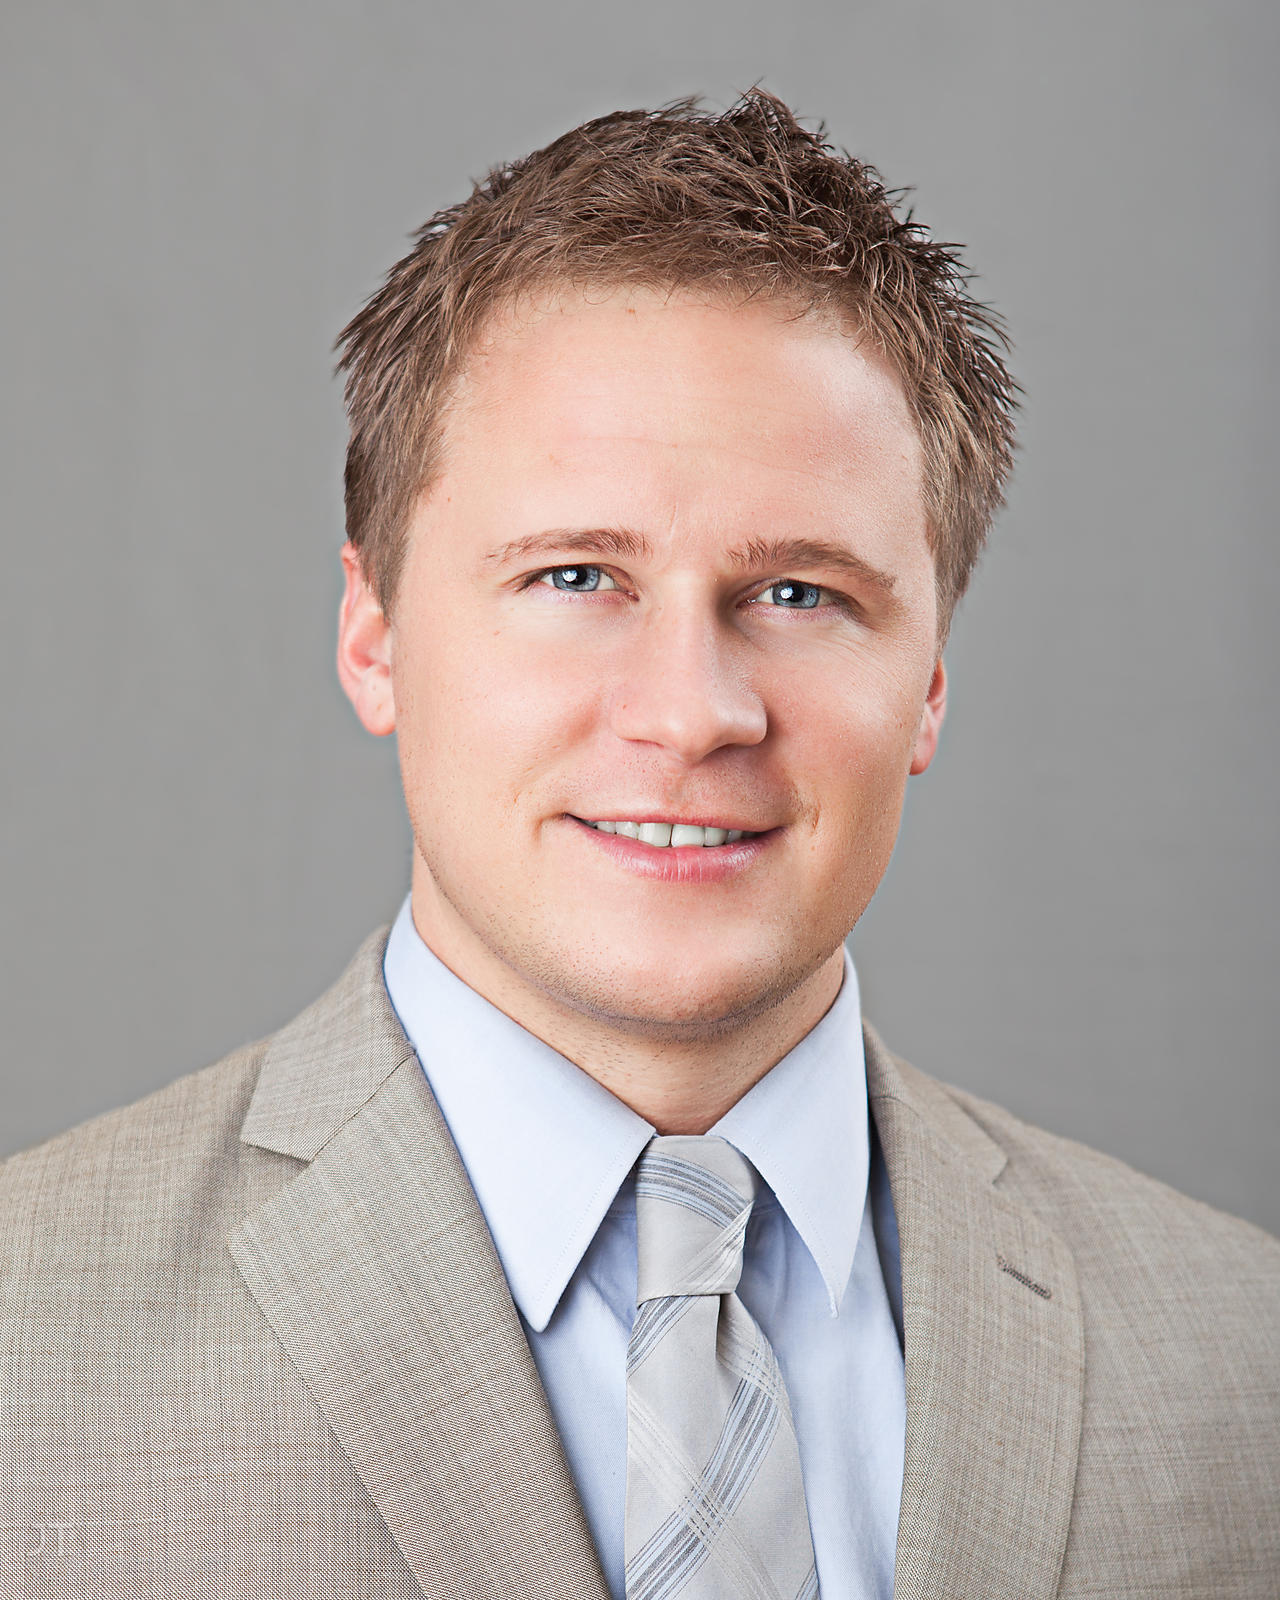 Ryan T Corporate Headshot